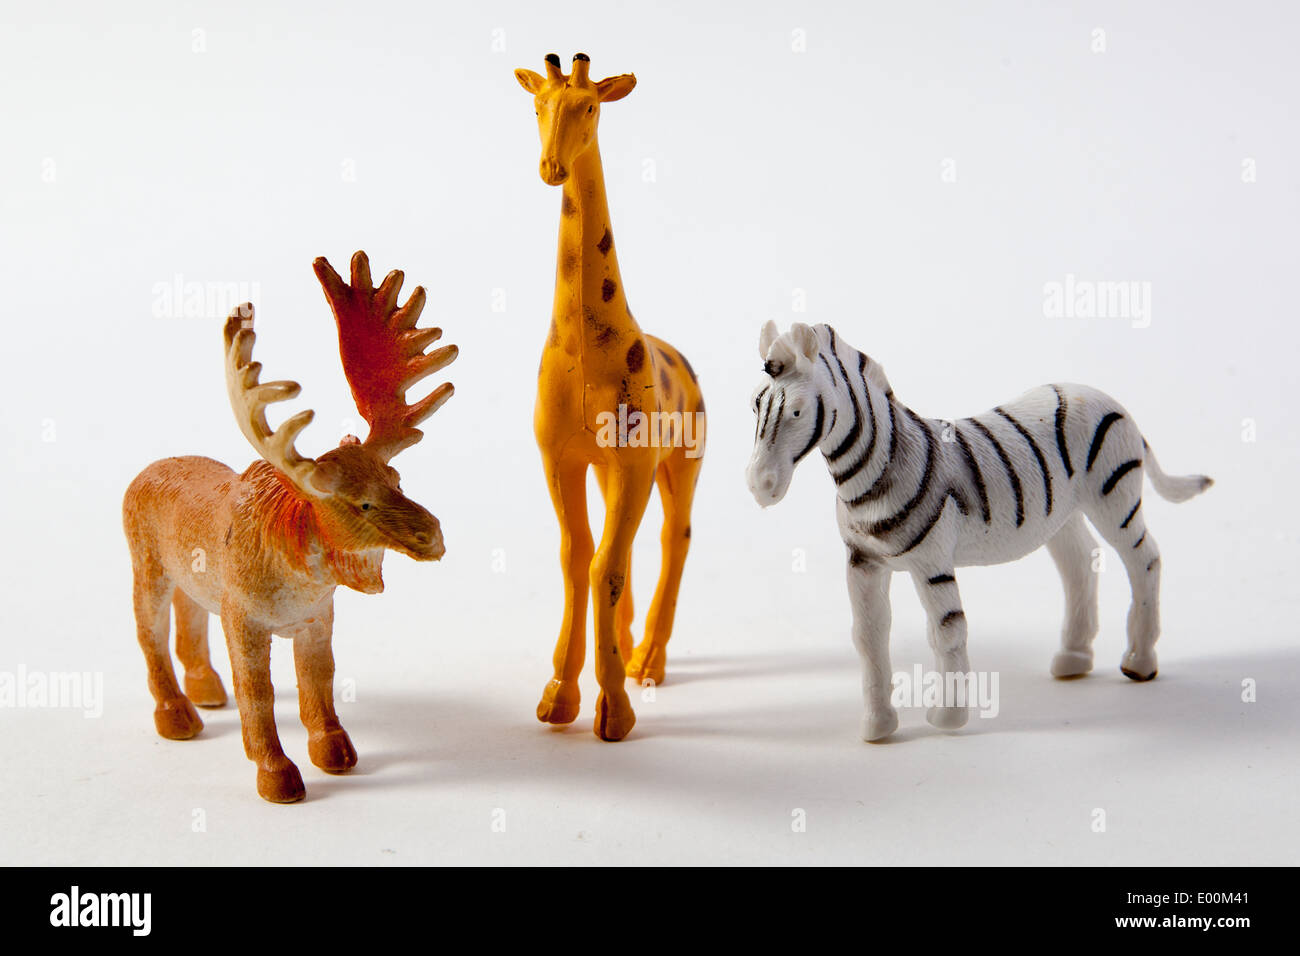 Plastic Toys And Figures From A Play Set Dinosaurs Farm Animals